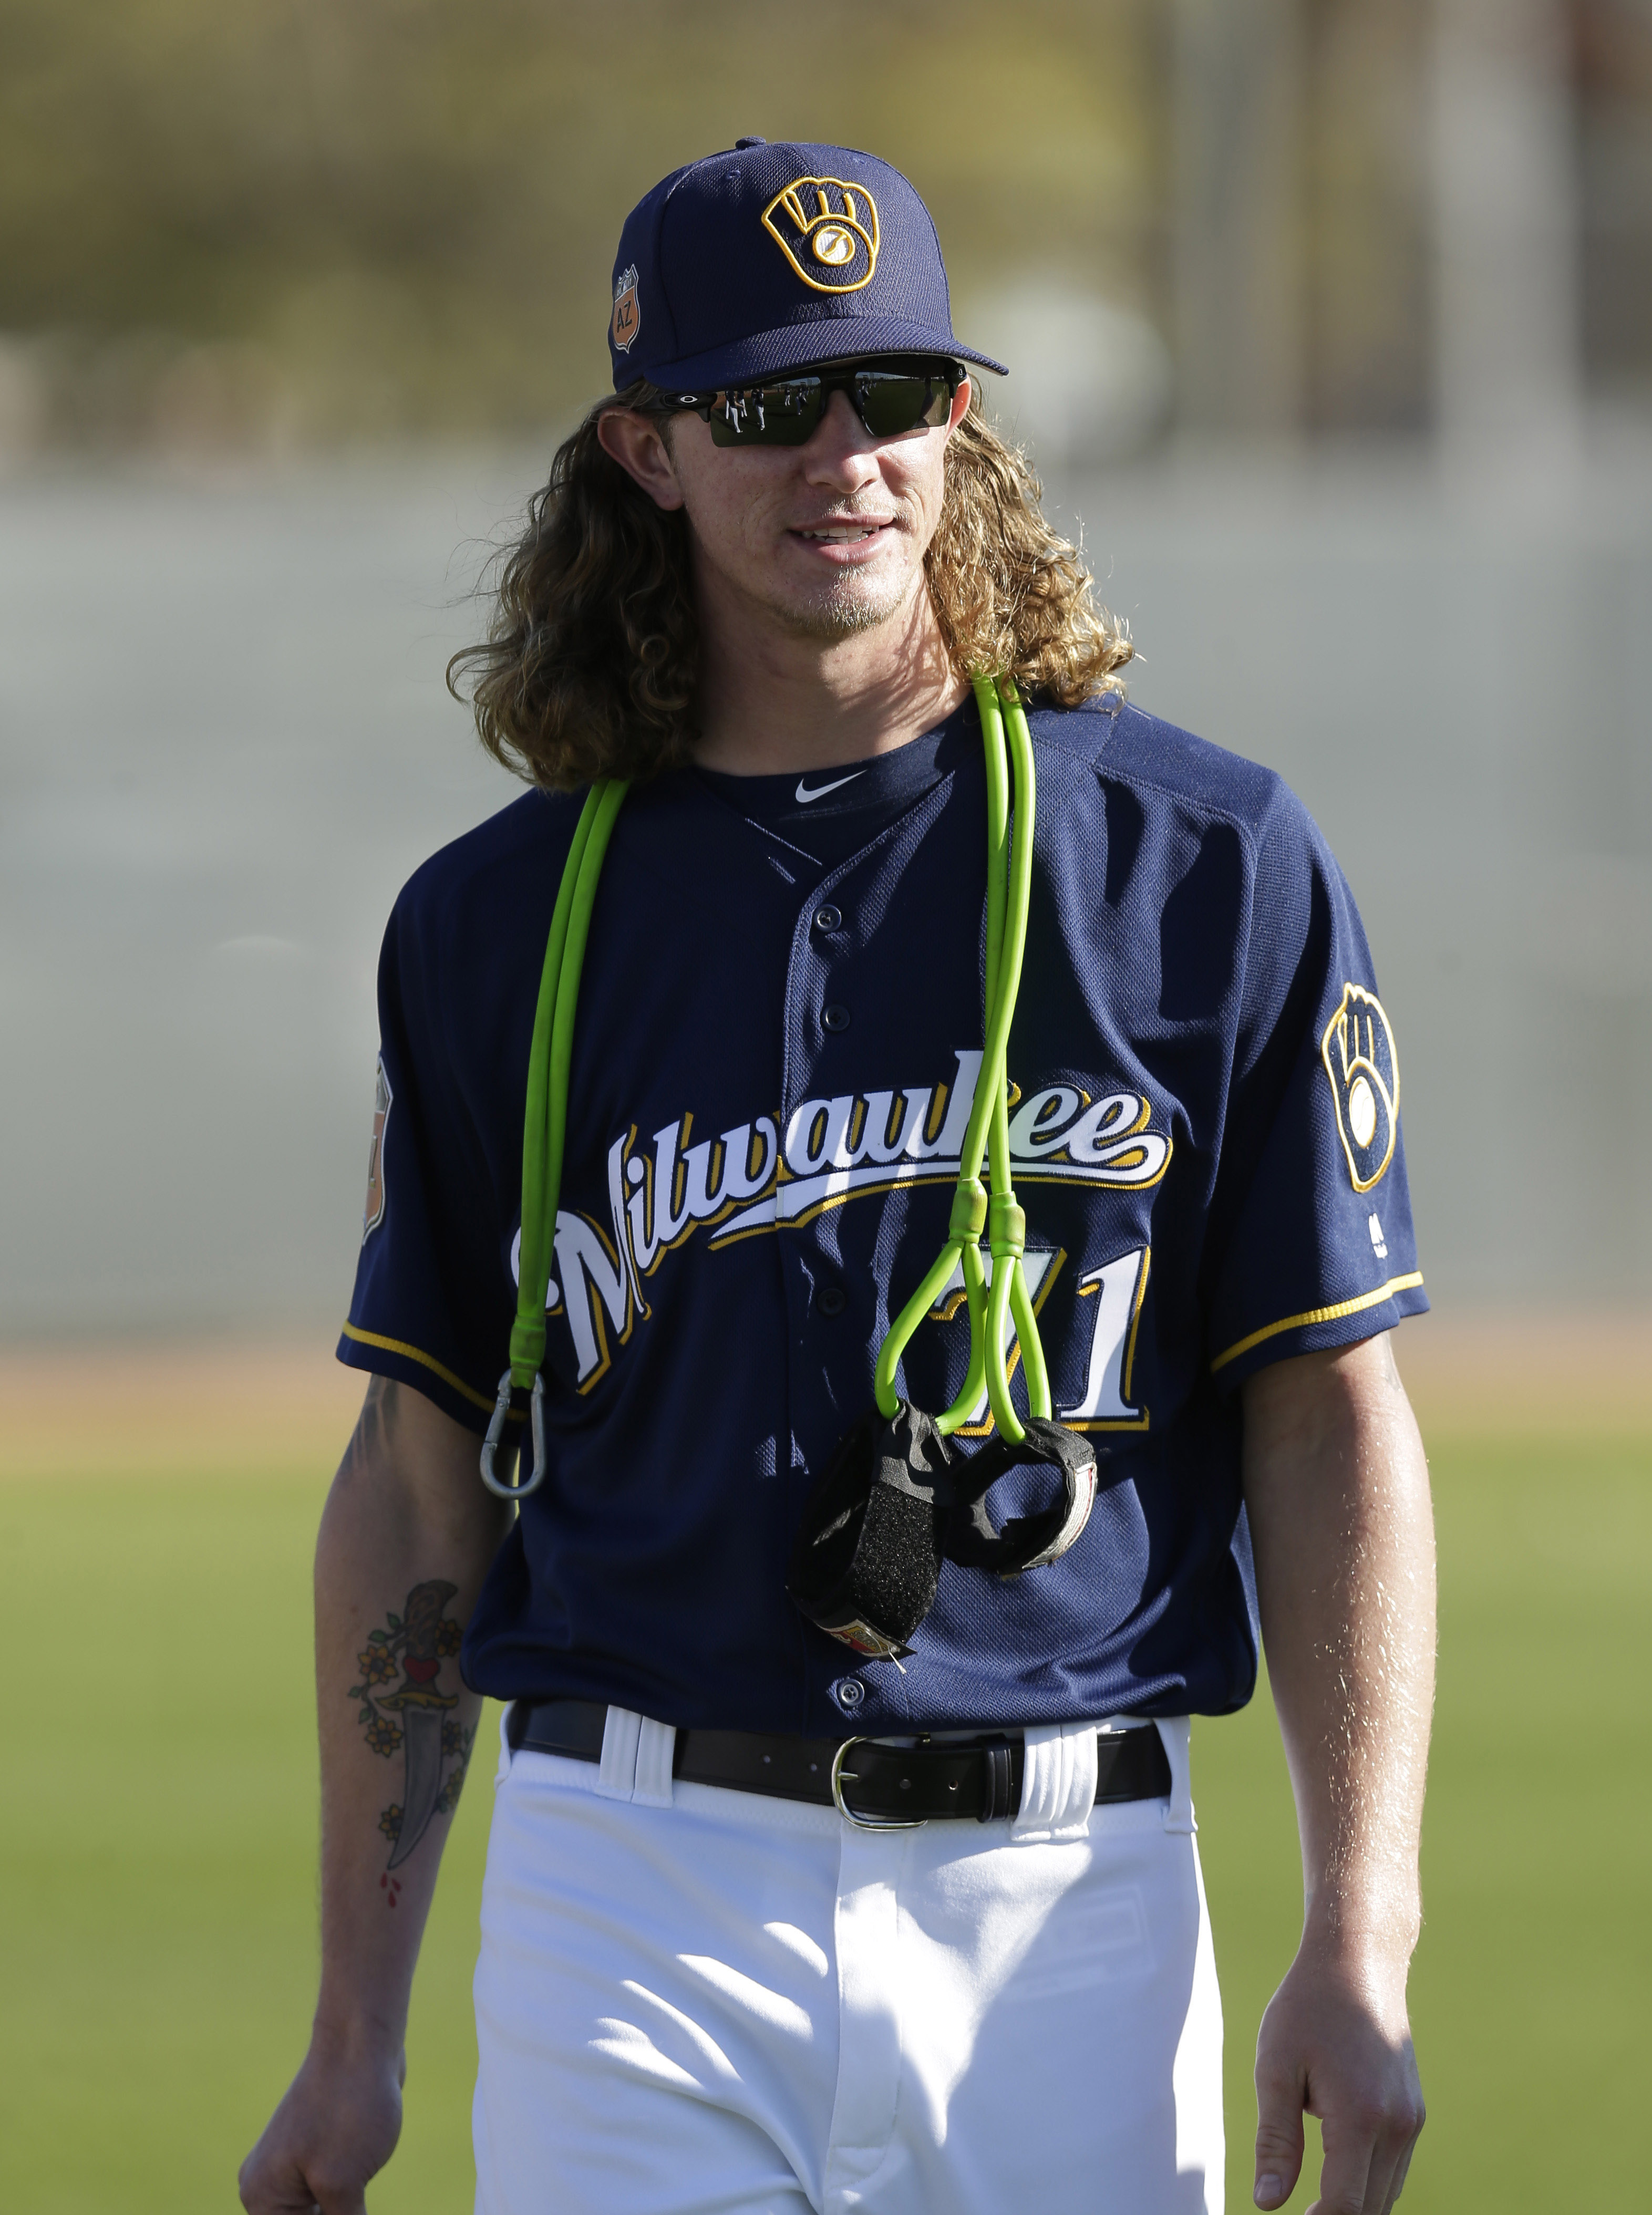 9880956-mlb-milwaukee-brewers-workouts